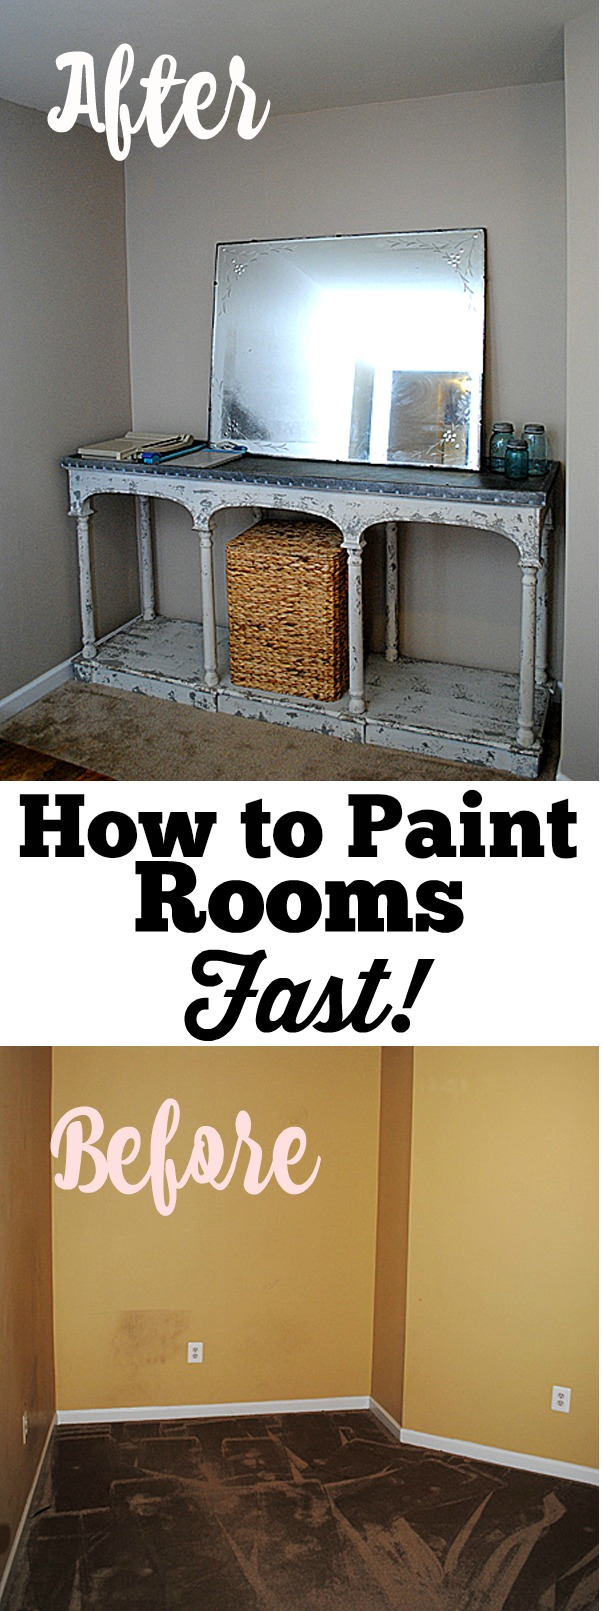 How To Paint A Room Fast Graphicsfairy The Graphics Fairy